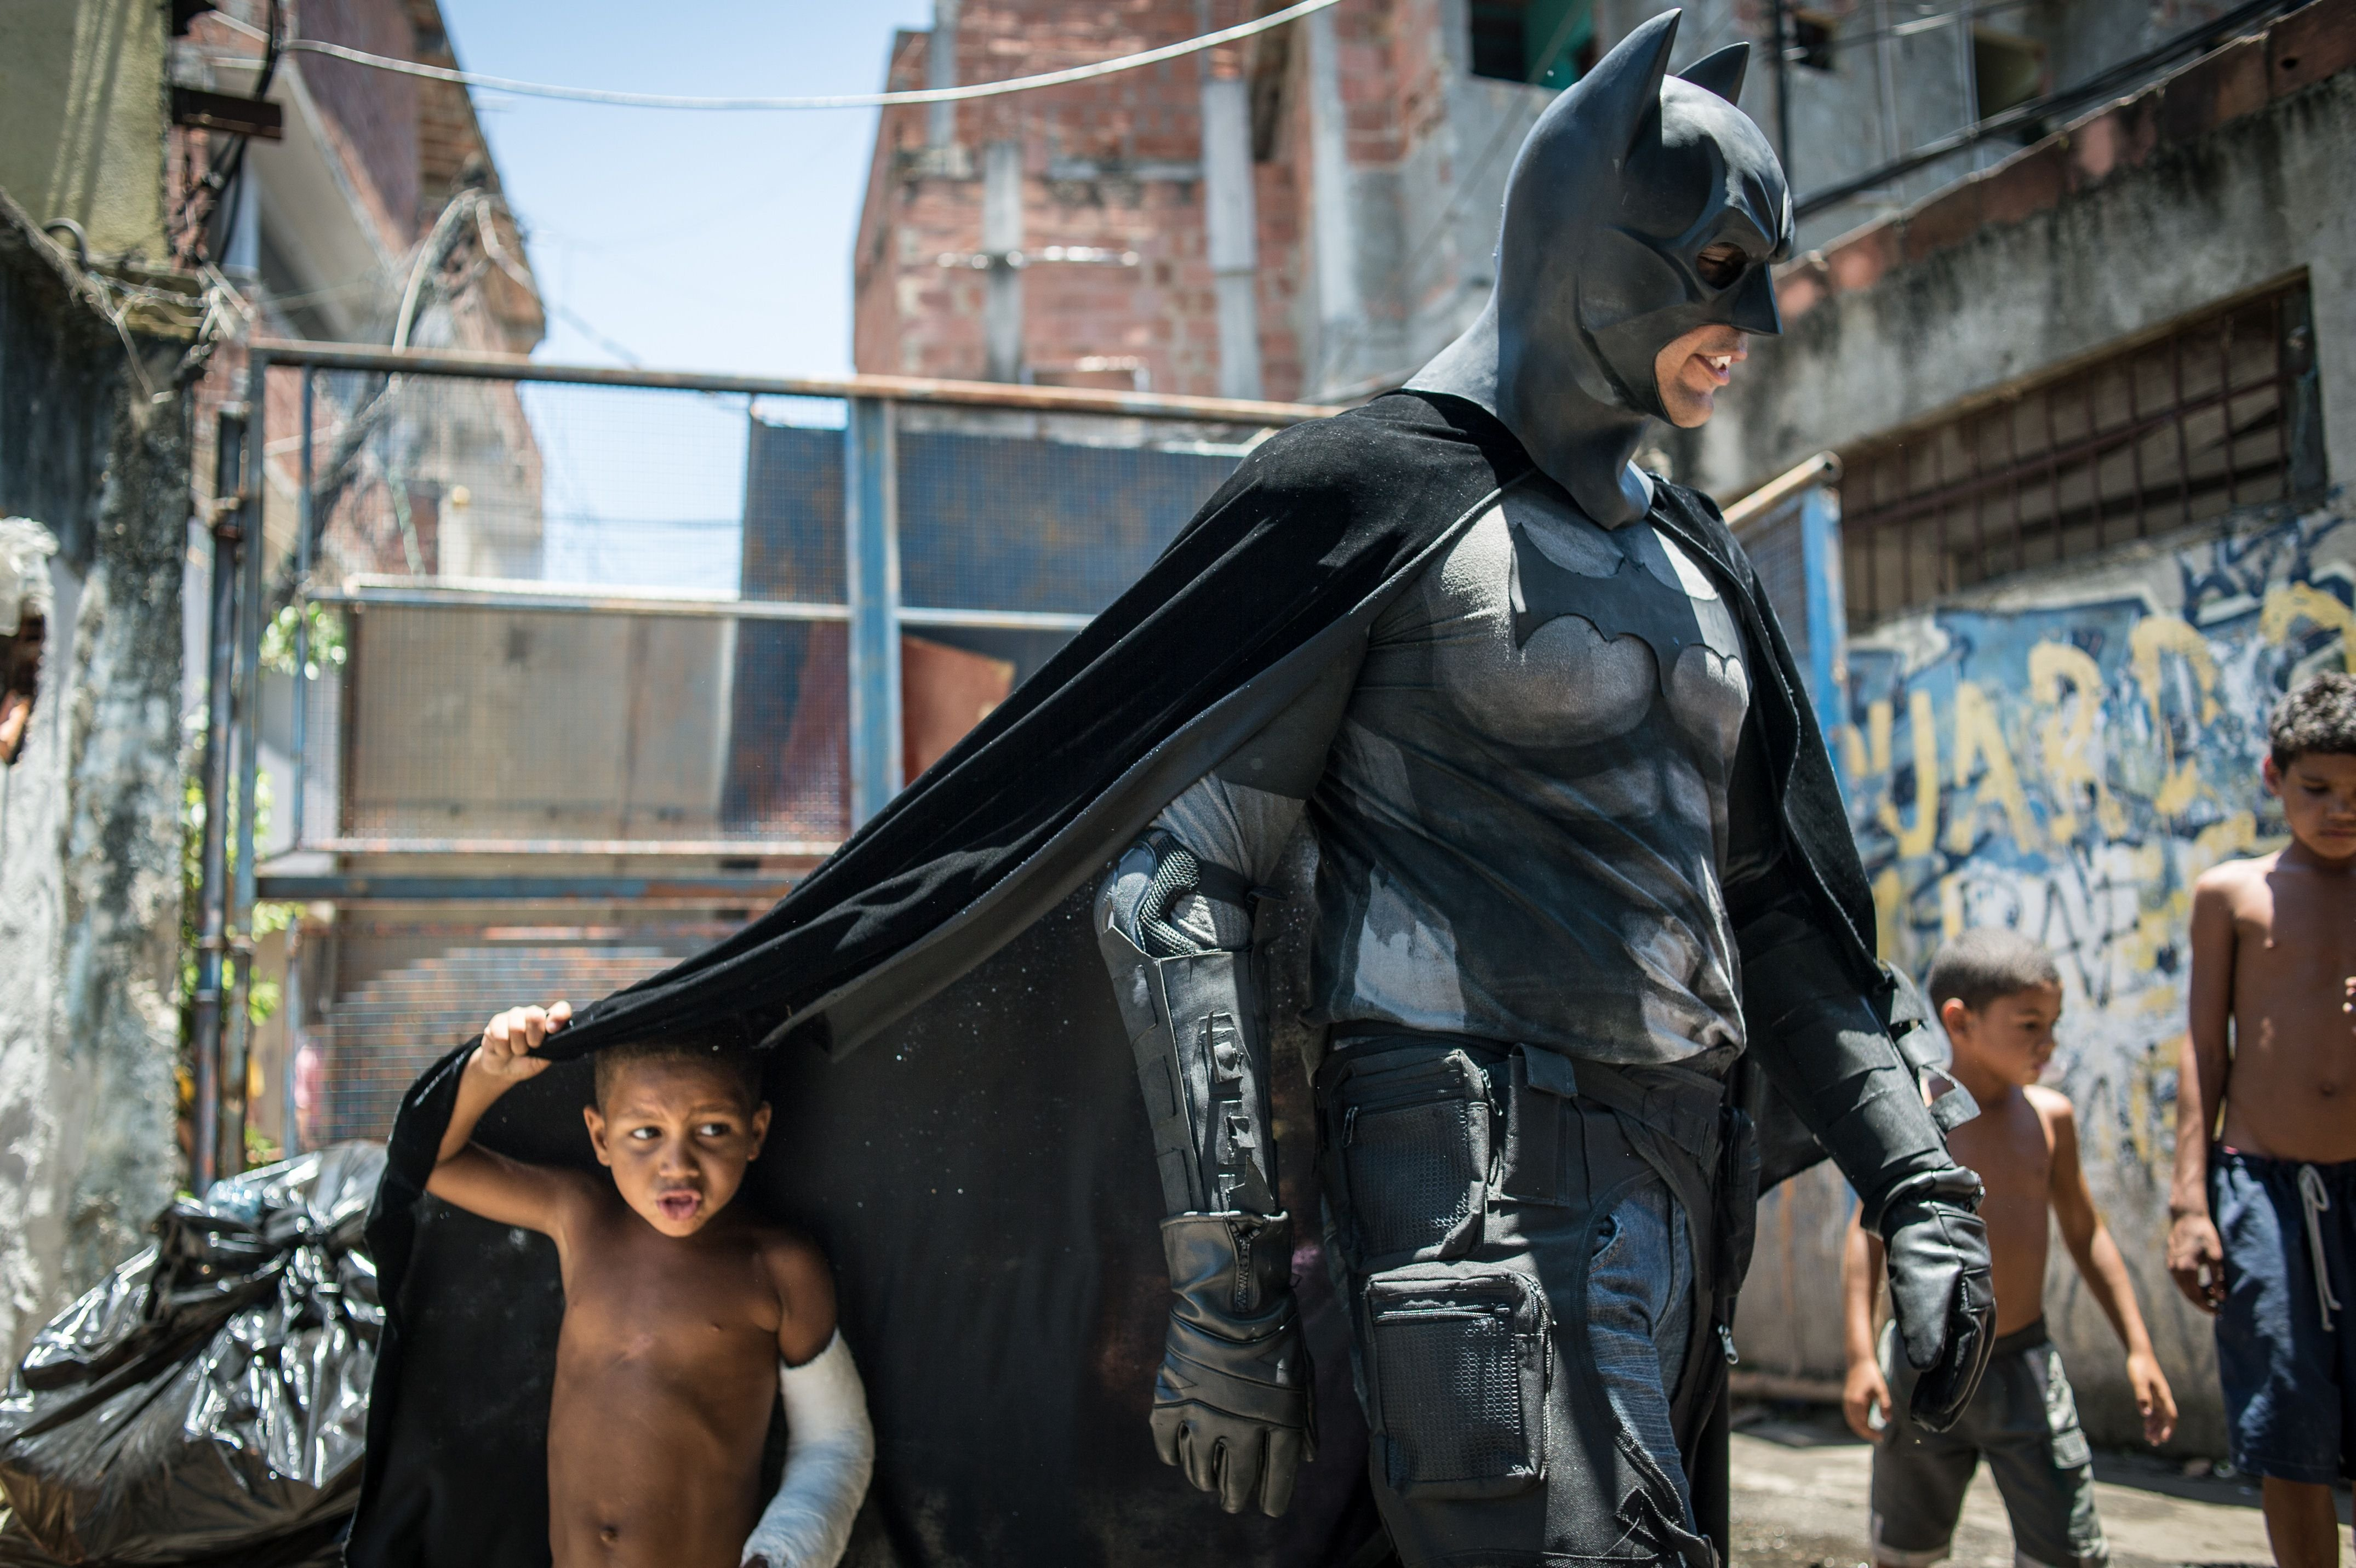 Children play around a man disguised as Batman in the Favela do Metro slum in Rio de Janeiro, Jan. 9, 2014. Families living in this shantytown within a stone's throw of Rio 's mythical Maracana stadium refuse to have their homes demolished as part of a project to renovate the district before the FIFA World Cup circus pitches camp in June.